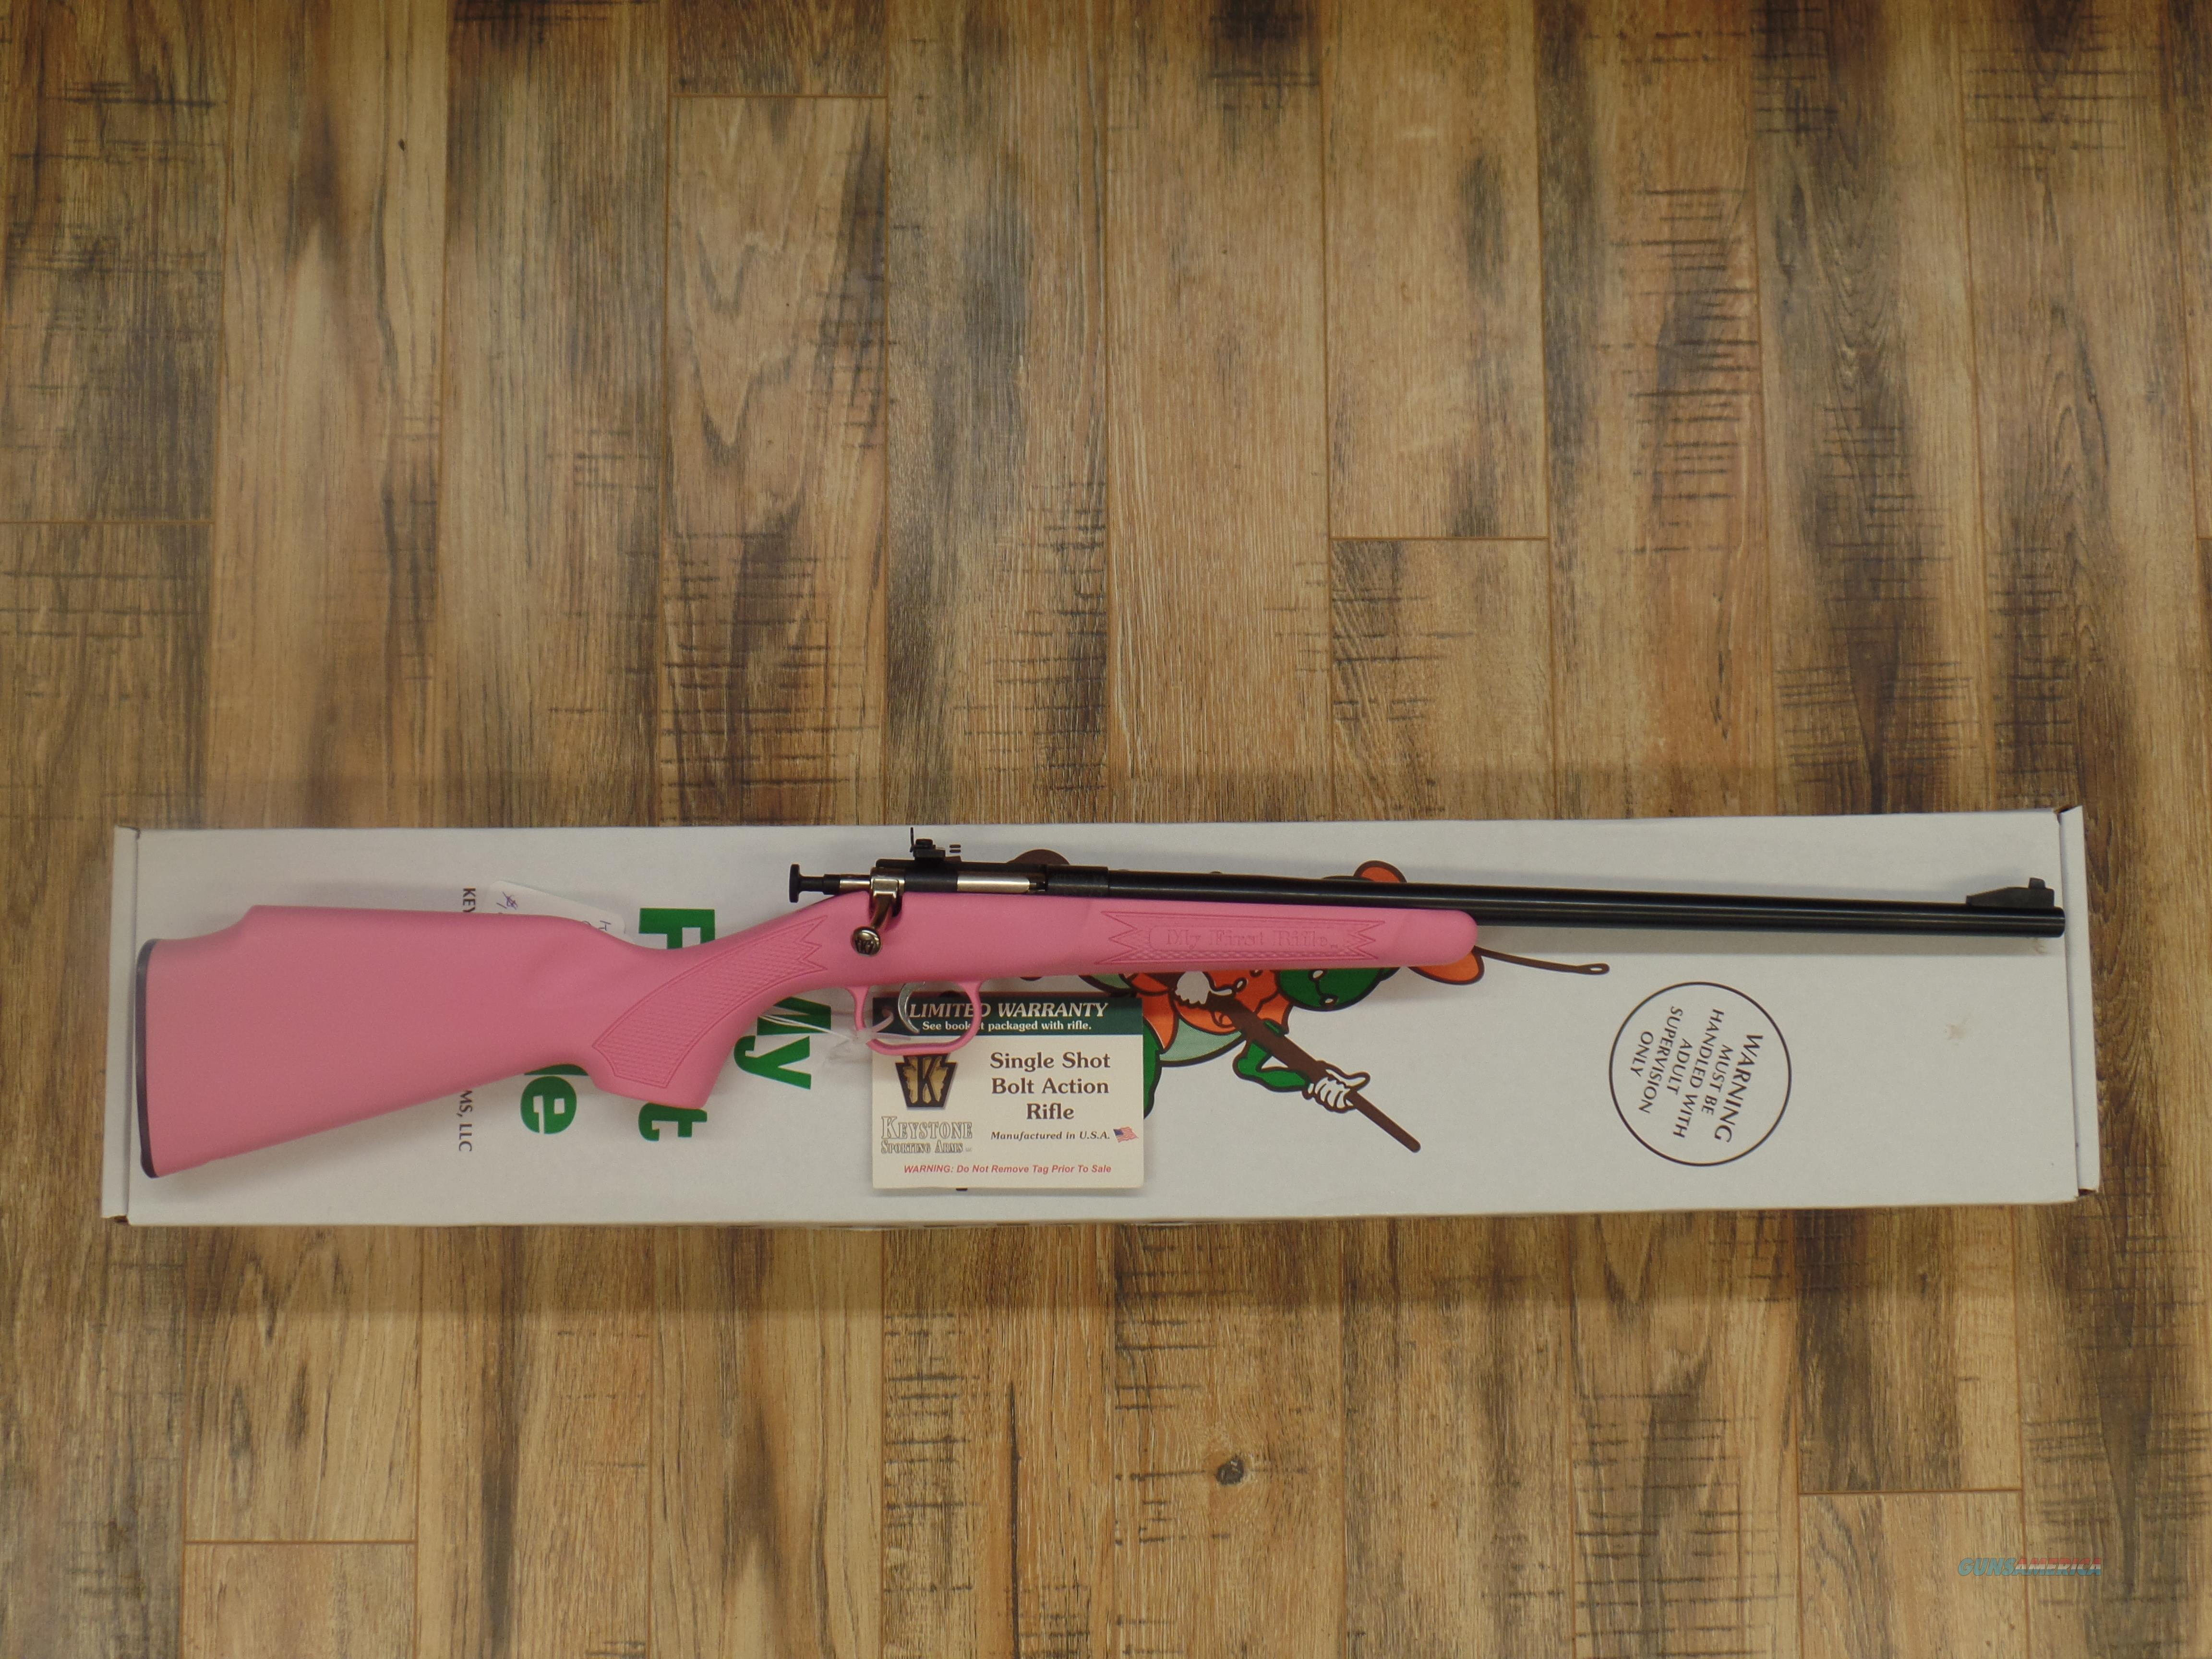 Keystone Arms Crickett Pink (22 LR)  Guns > Rifles > Crickett-Keystone Rifles